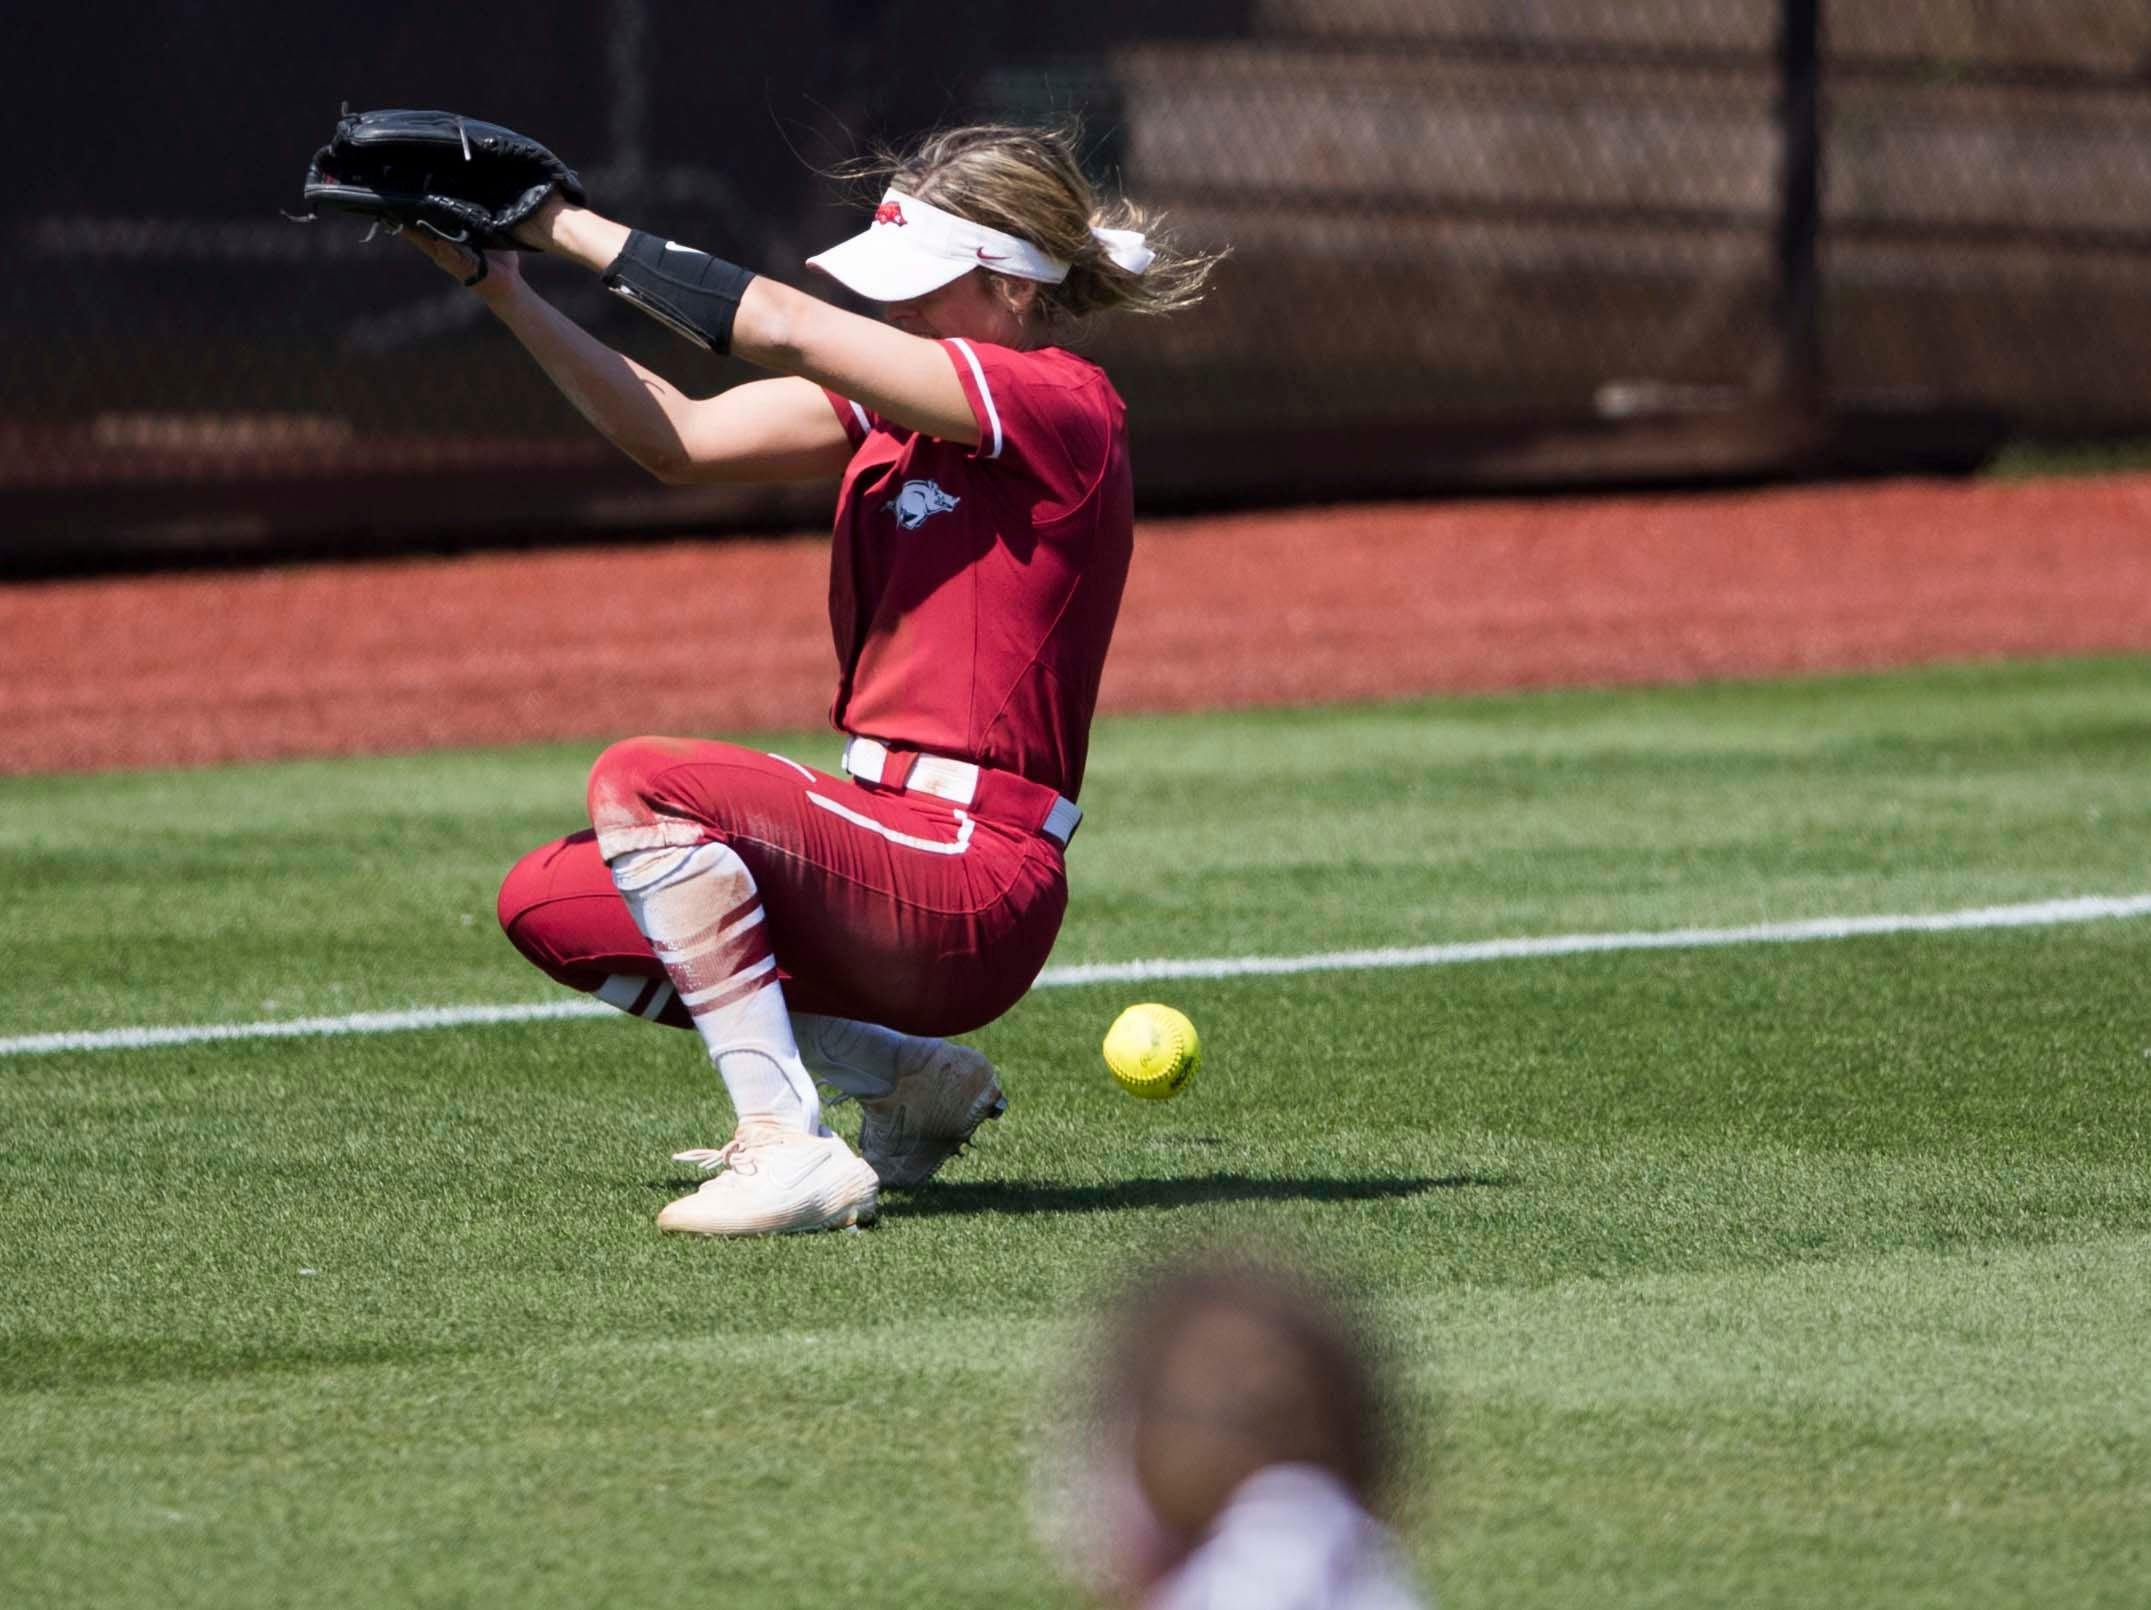 An Arkansas outfielder misses a fly ball during a Lady Vols softball game against Arkansas at Sherri Parker Lee stadium on University of Tennessee's campus in Knoxville Sunday, March 24, 2019. The Lady Vols defeated Arkansas.